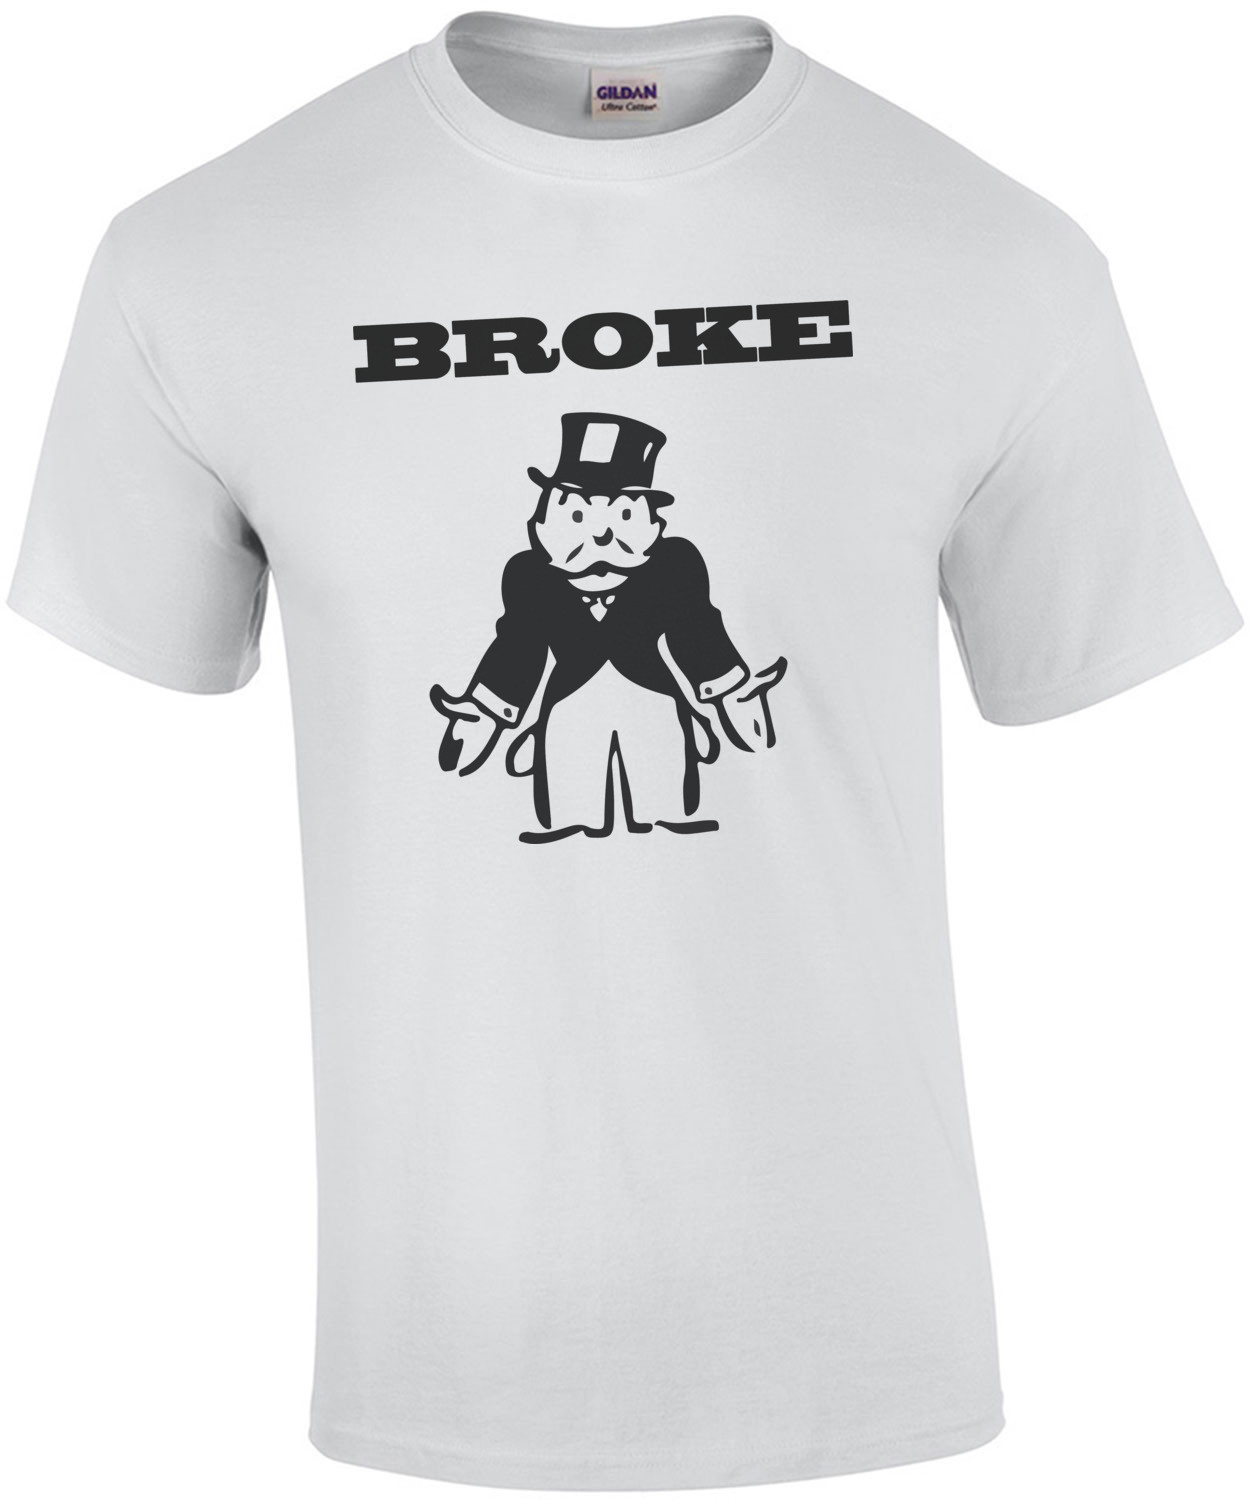 Broke! monopoly man T-Shirt